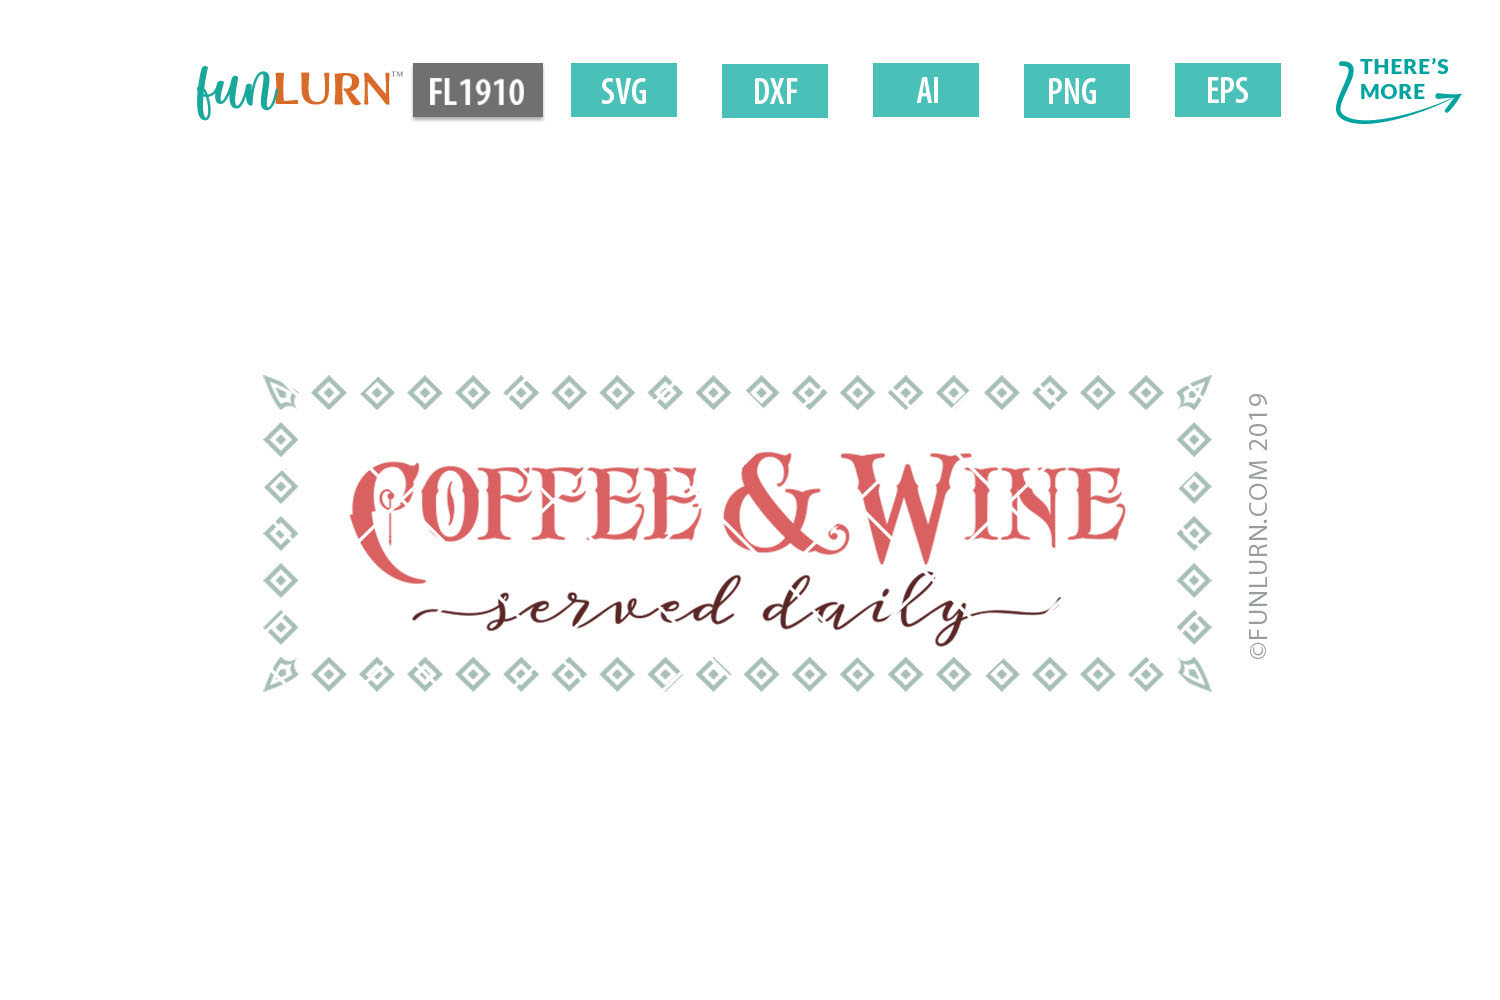 Coffee and Wine Served Daily SVG Cut File example image 2